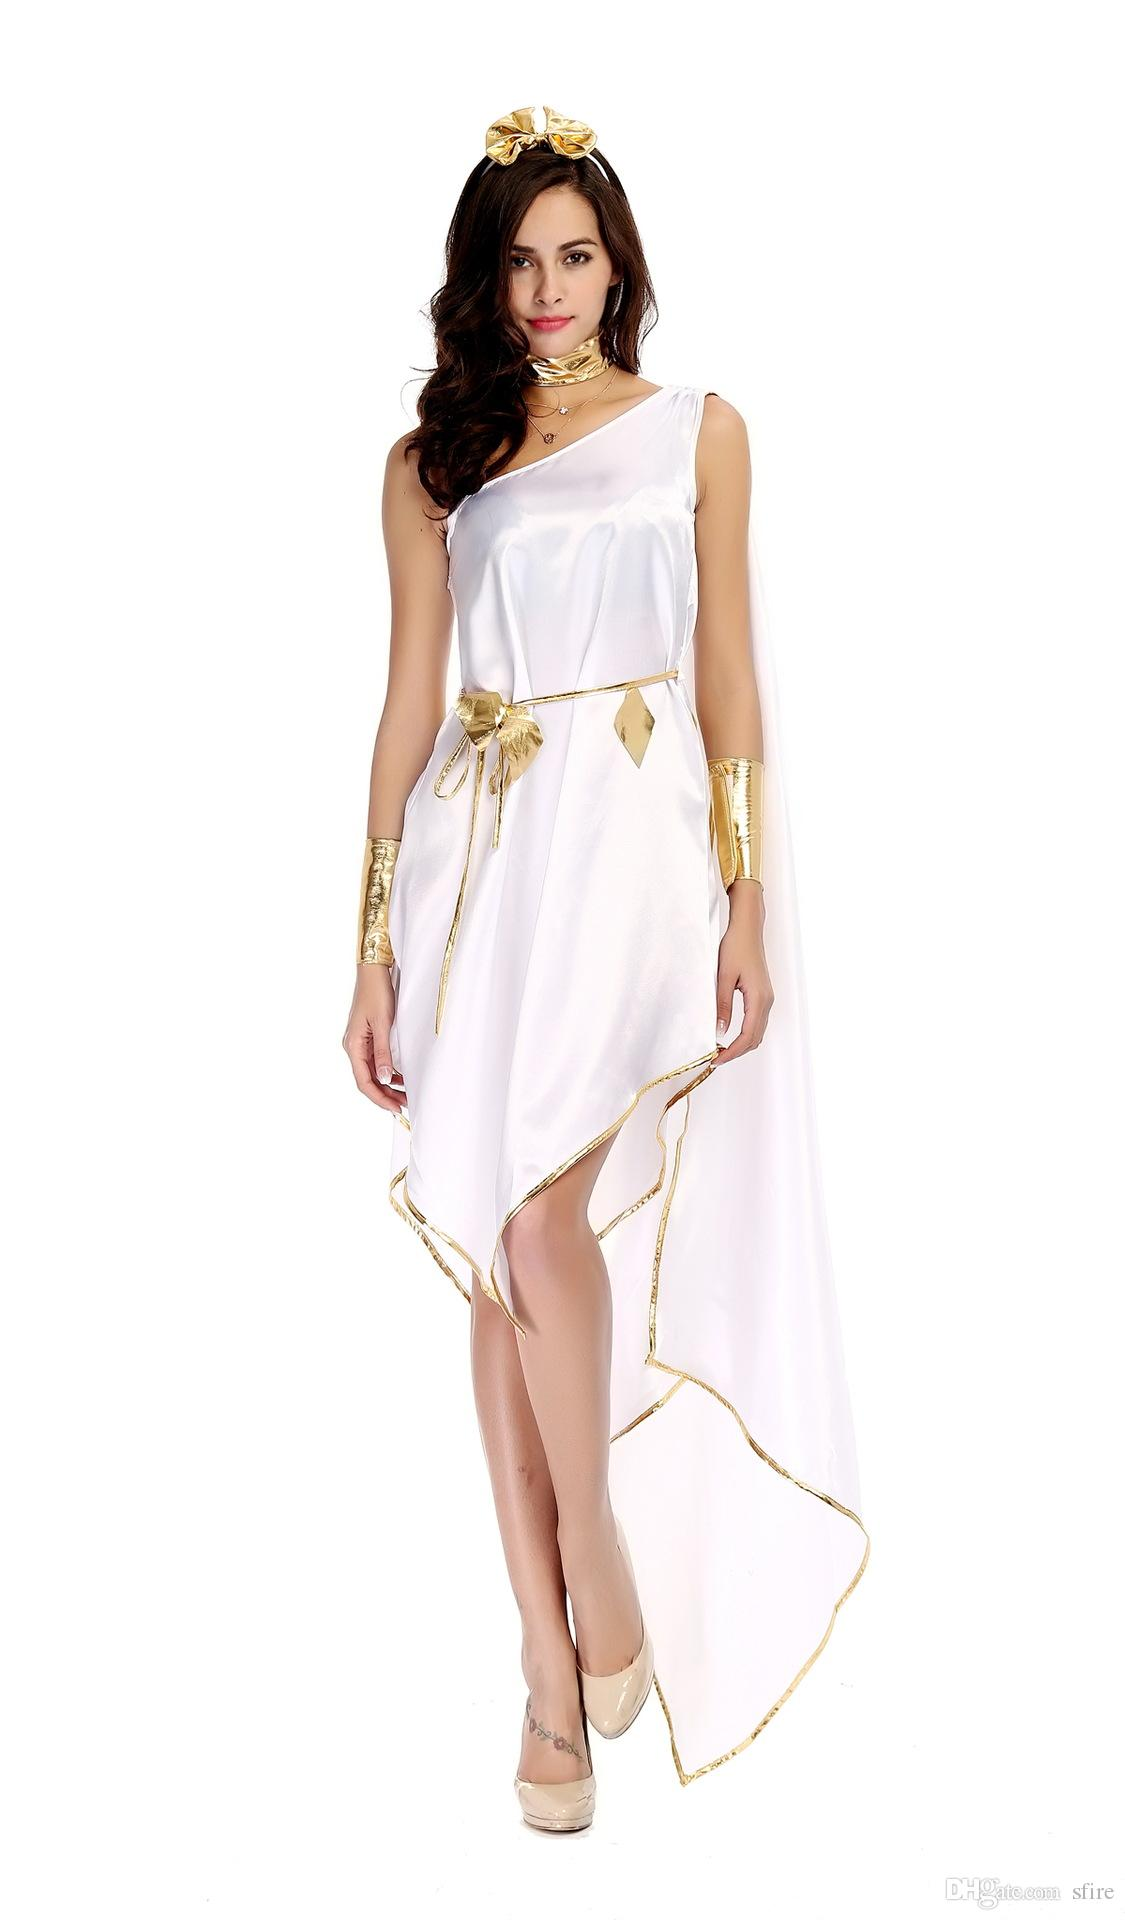 White Black Greek Goddess Cosplay Long Dress One Shoulder Open Chest Sexy Night Party Clothing Adult Women